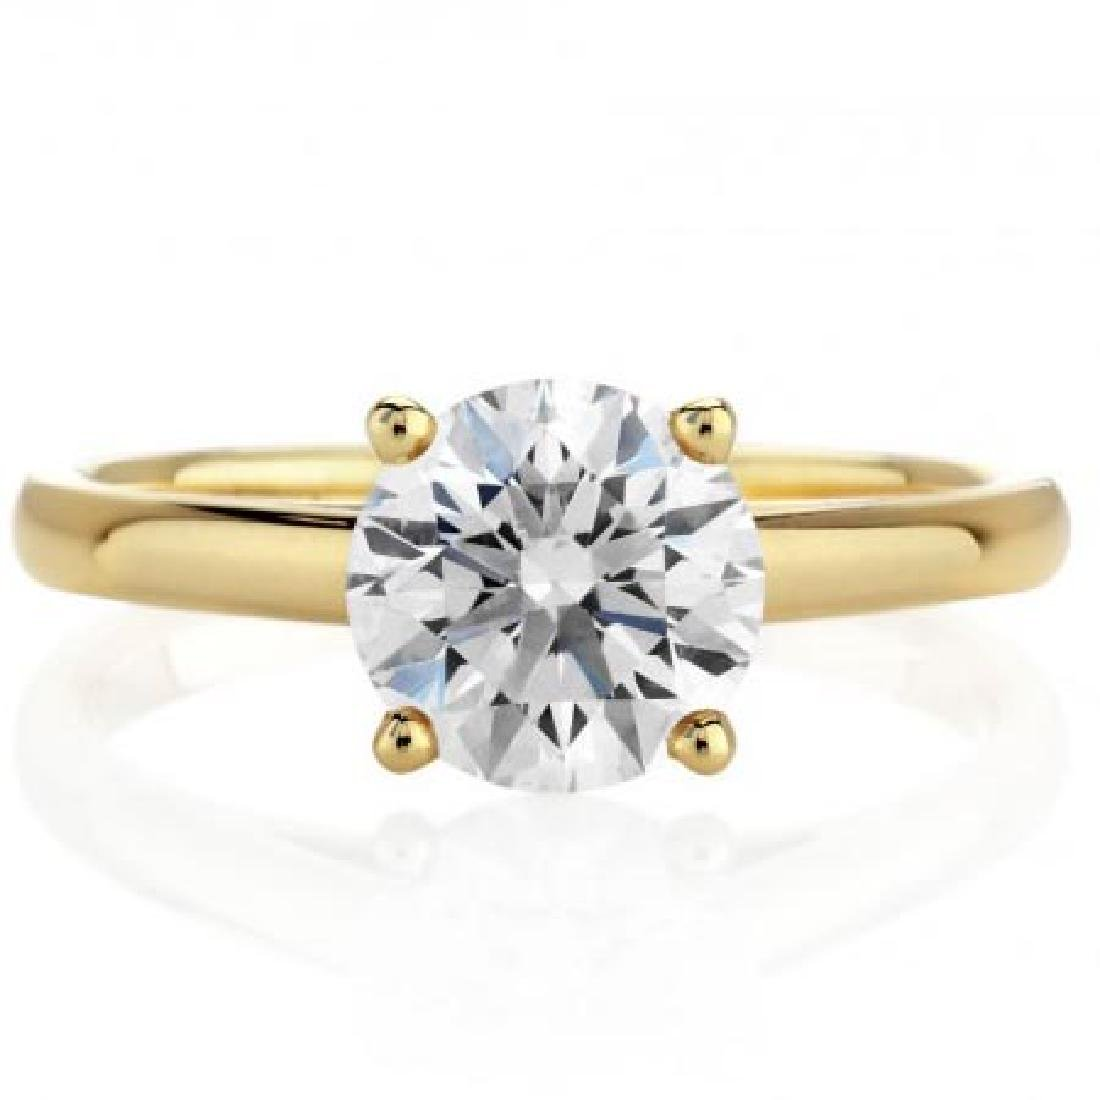 CERTIFIED 0.92 CTW ROUND G/SI1 SOLITAIRE RING IN 14K YE